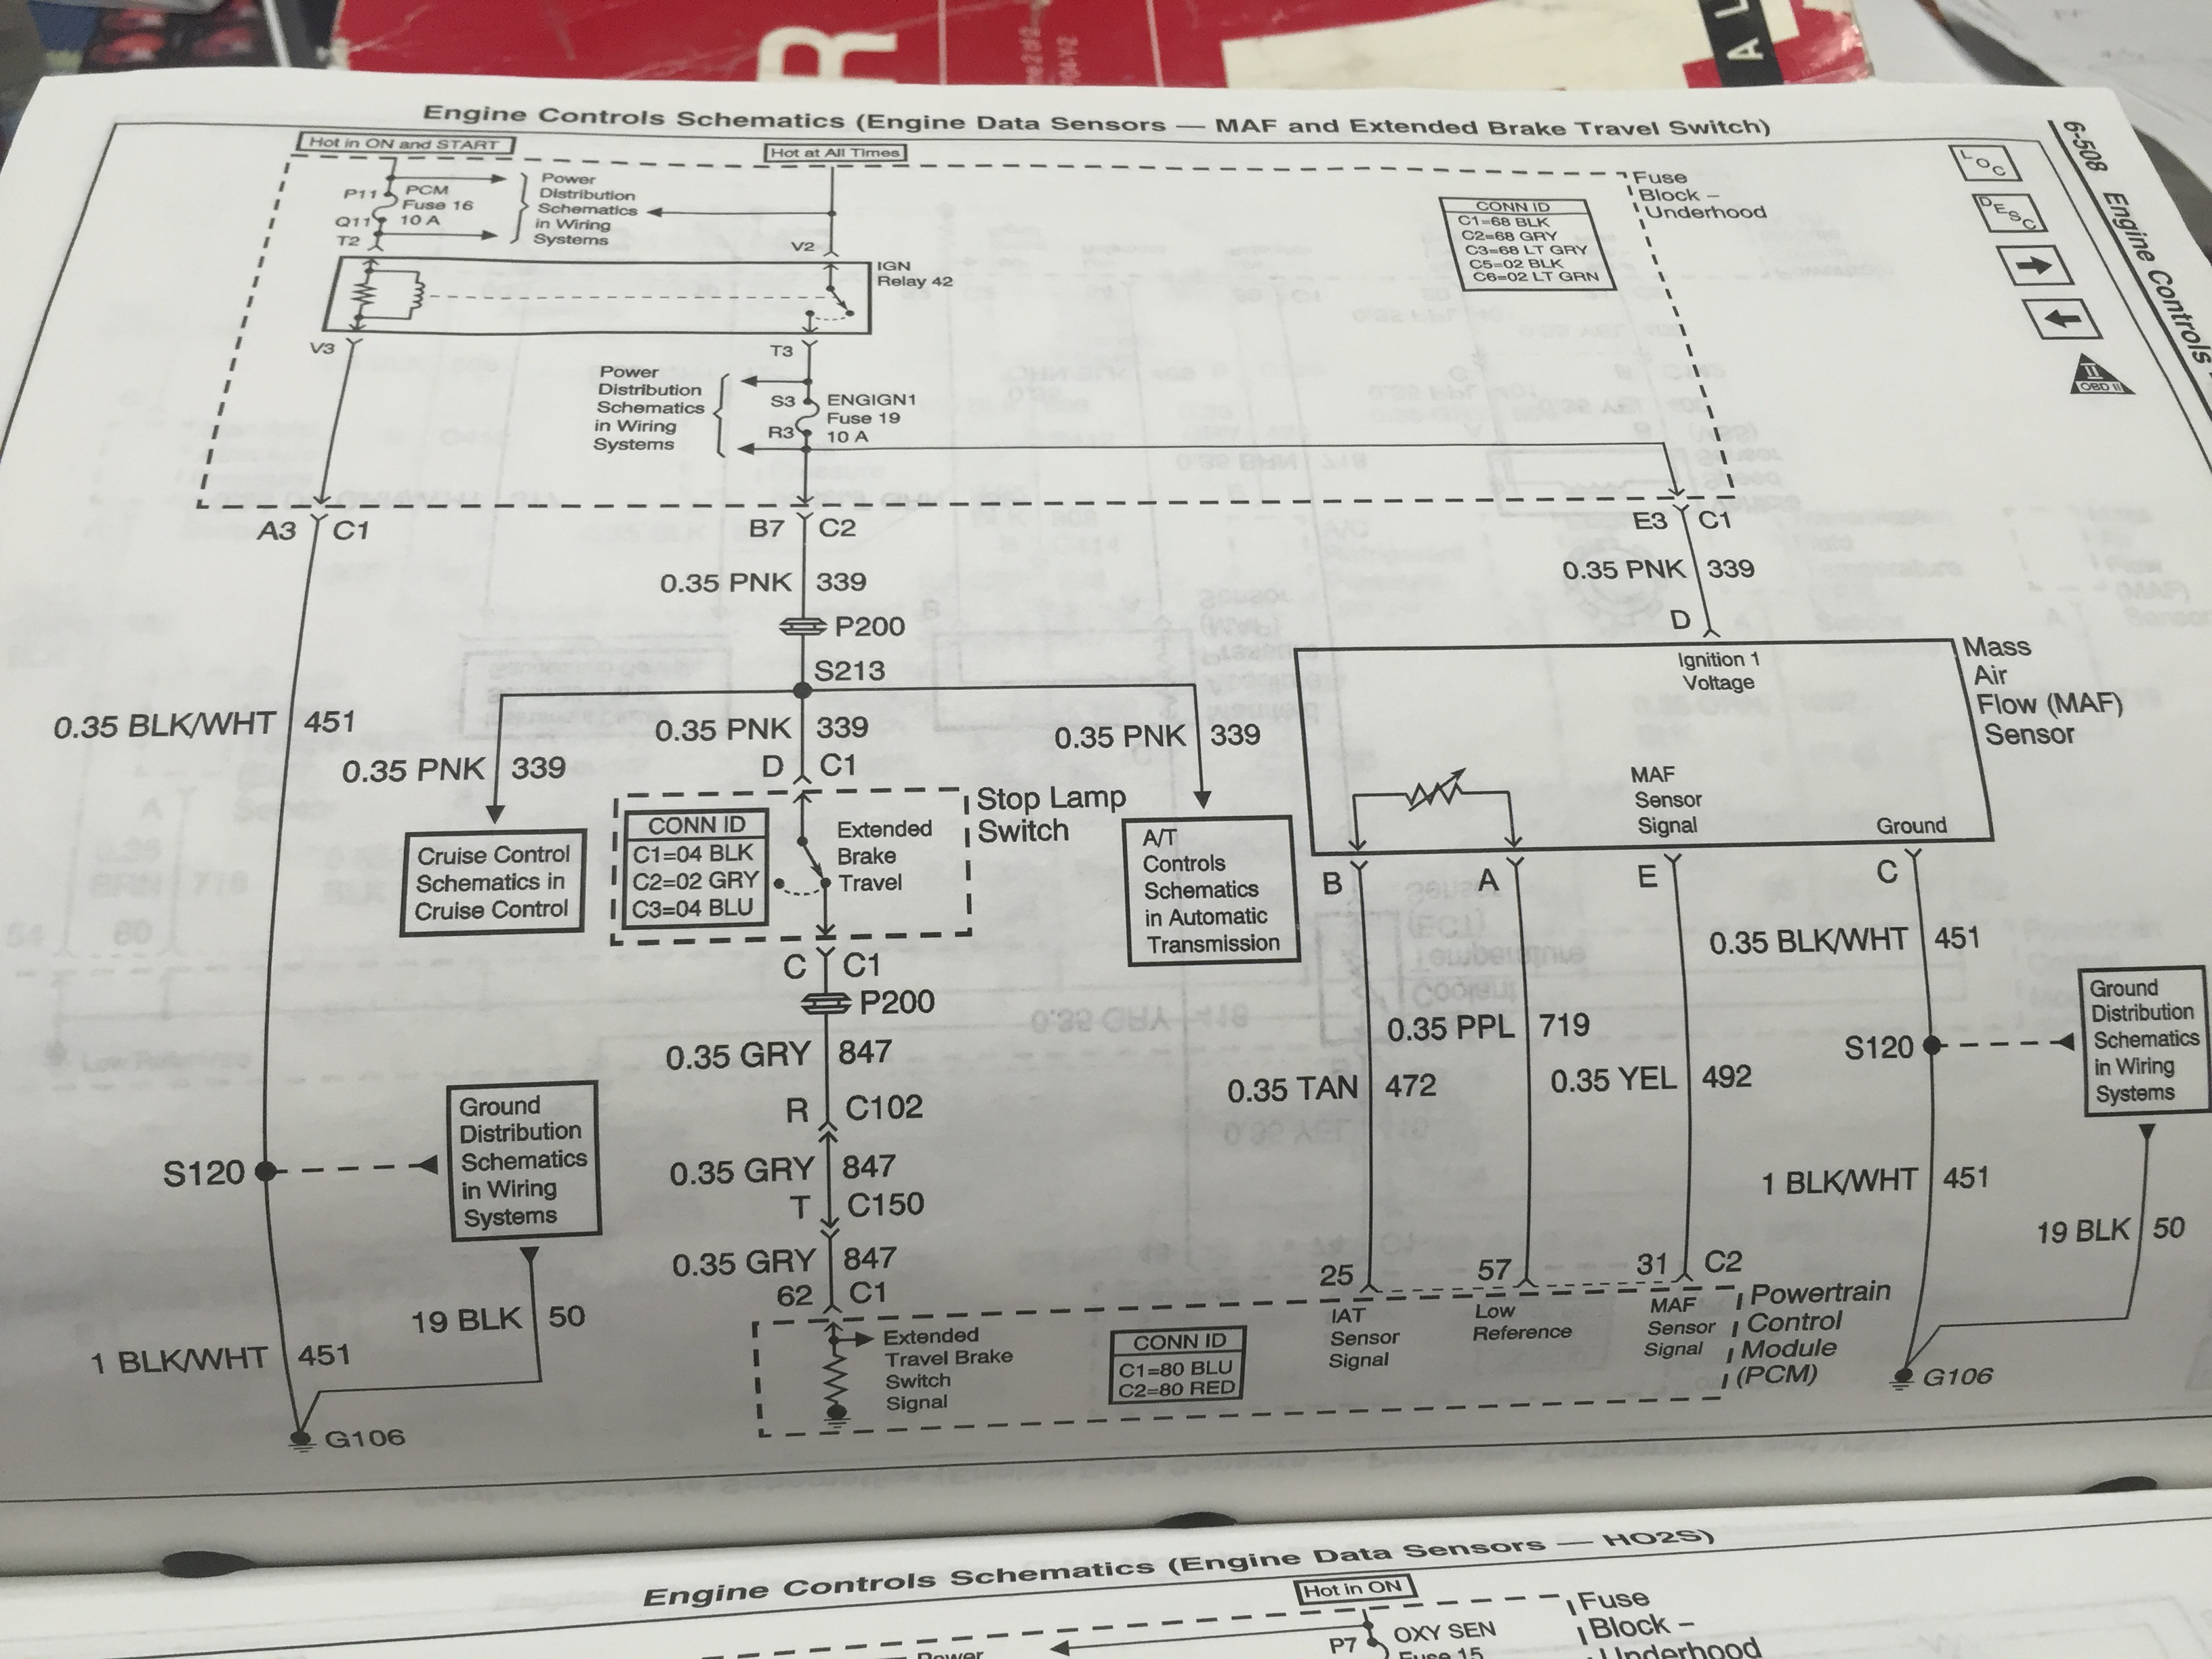 Wiring Diagram 8 1 Gm Mas Air Flow - All Wiring Diagram Data - Mass Air Flow Wiring Diagram